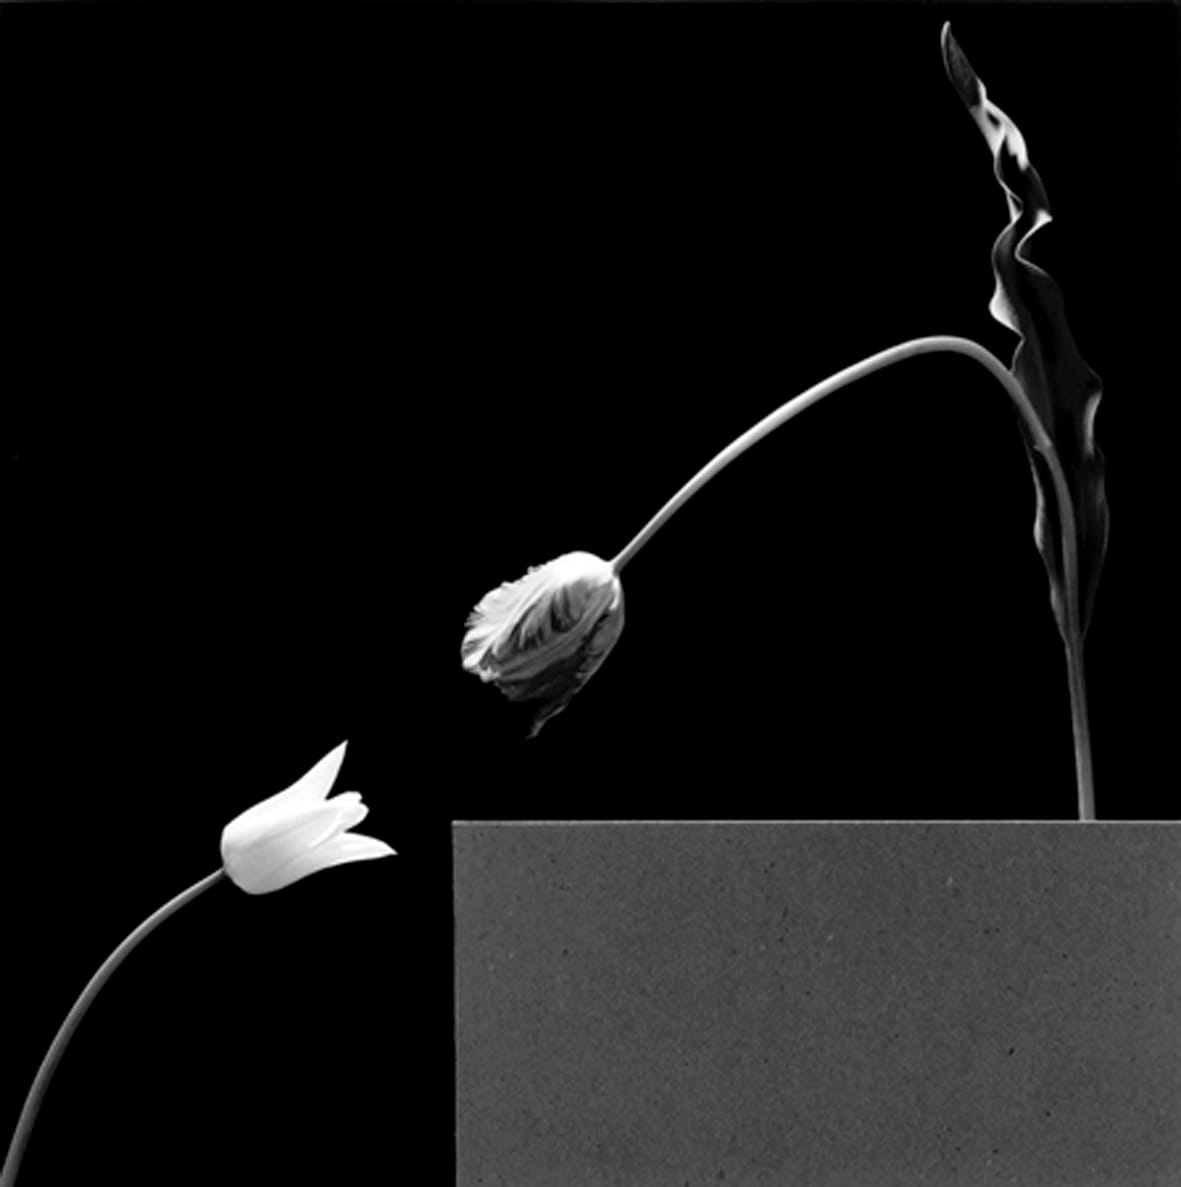 """<span class=""""link fancybox-details-link""""><a href=""""/exhibitions/120/works/artworks7763/"""">View Detail Page</a></span><div class=""""artist""""><strong> Robert Mapplethorpe</strong></div><div class=""""title""""><em>Two Tuplips</em>, 1984 / printed 2011</div><div class=""""signed_and_dated"""">unsigned</div><div class=""""medium"""">gelatin silver print</div><div class=""""dimensions"""">image: 38.40 x 38.10 cm <br>framed: 62.0 x 59.5 cm</div><div class=""""edition_details""""></div>"""